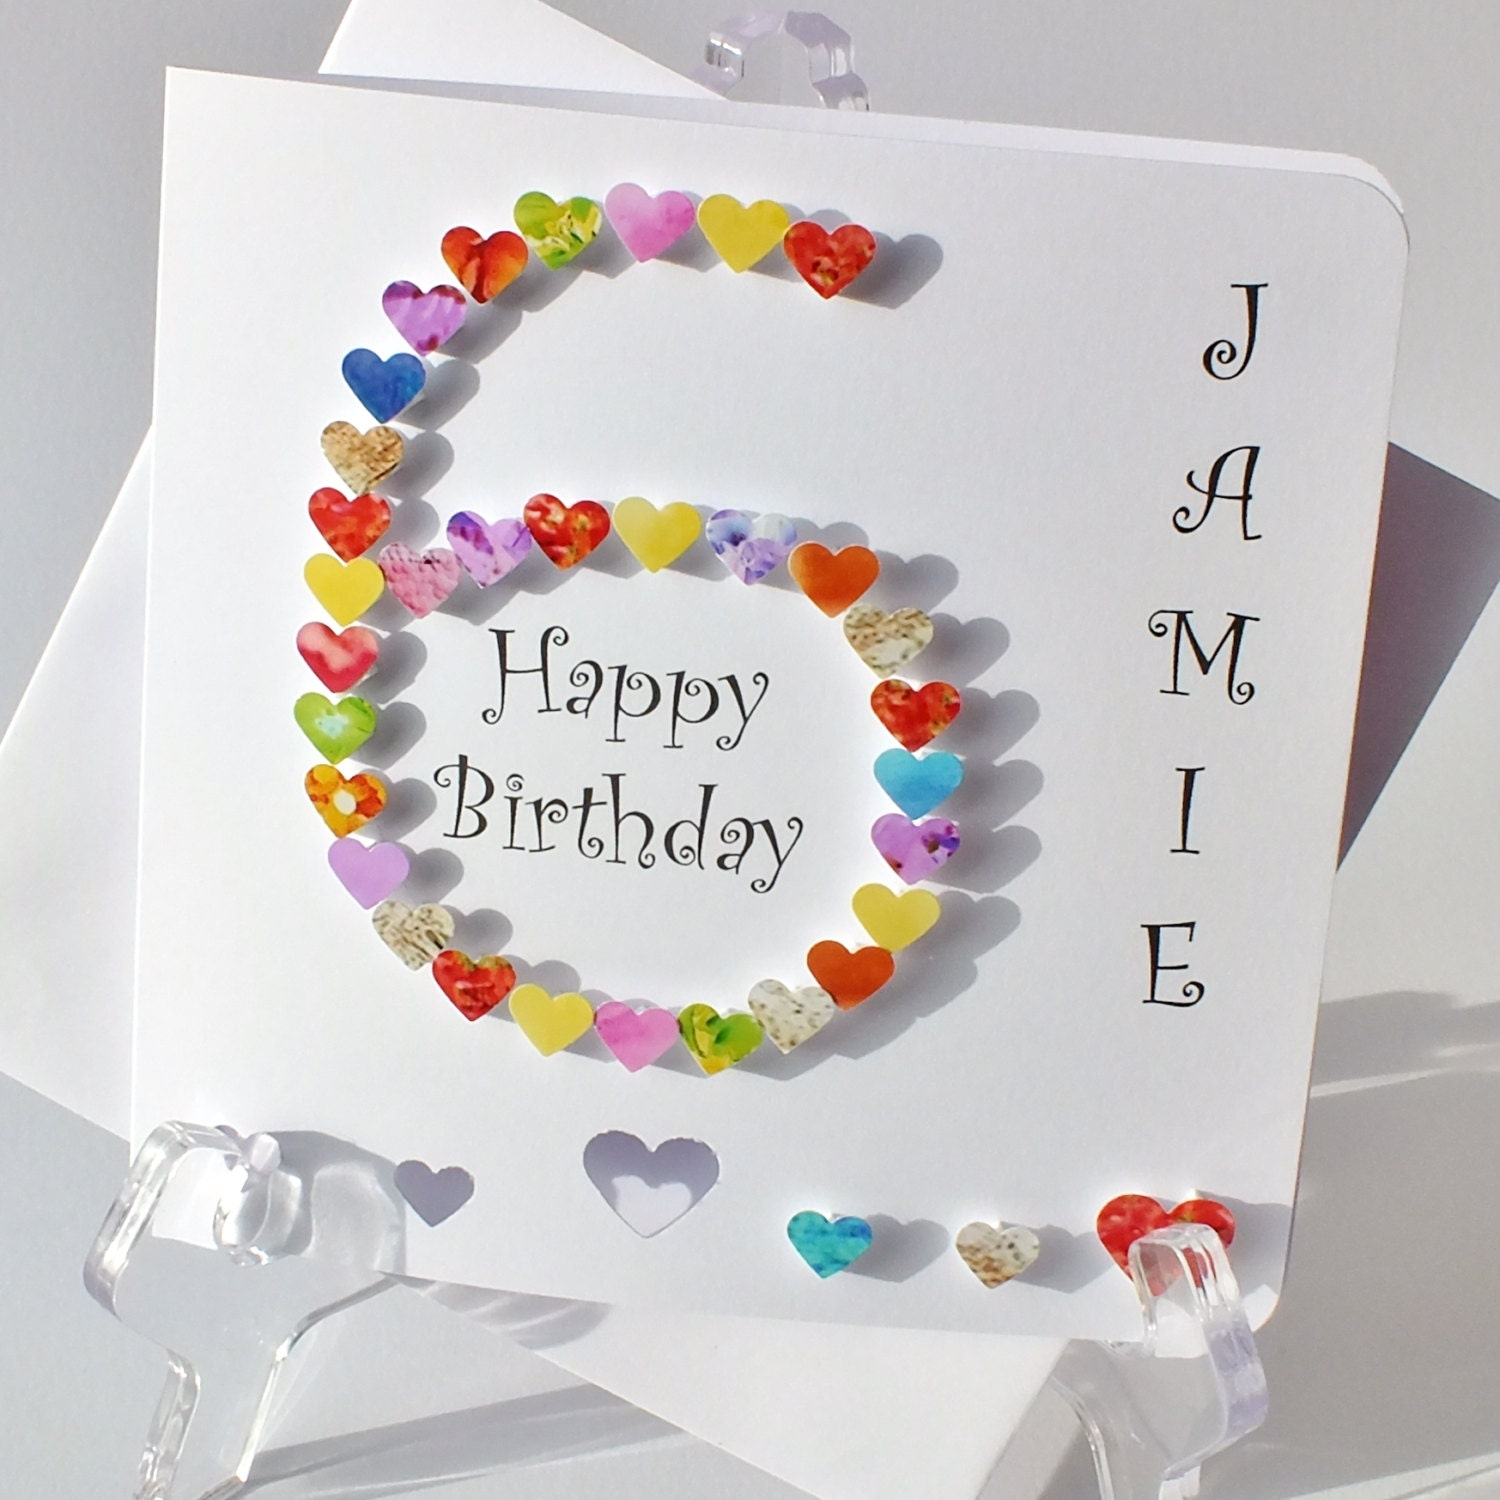 Handmade 3D 6 Card 6th Birthday Card Personalised – 6 Year Old Birthday Card